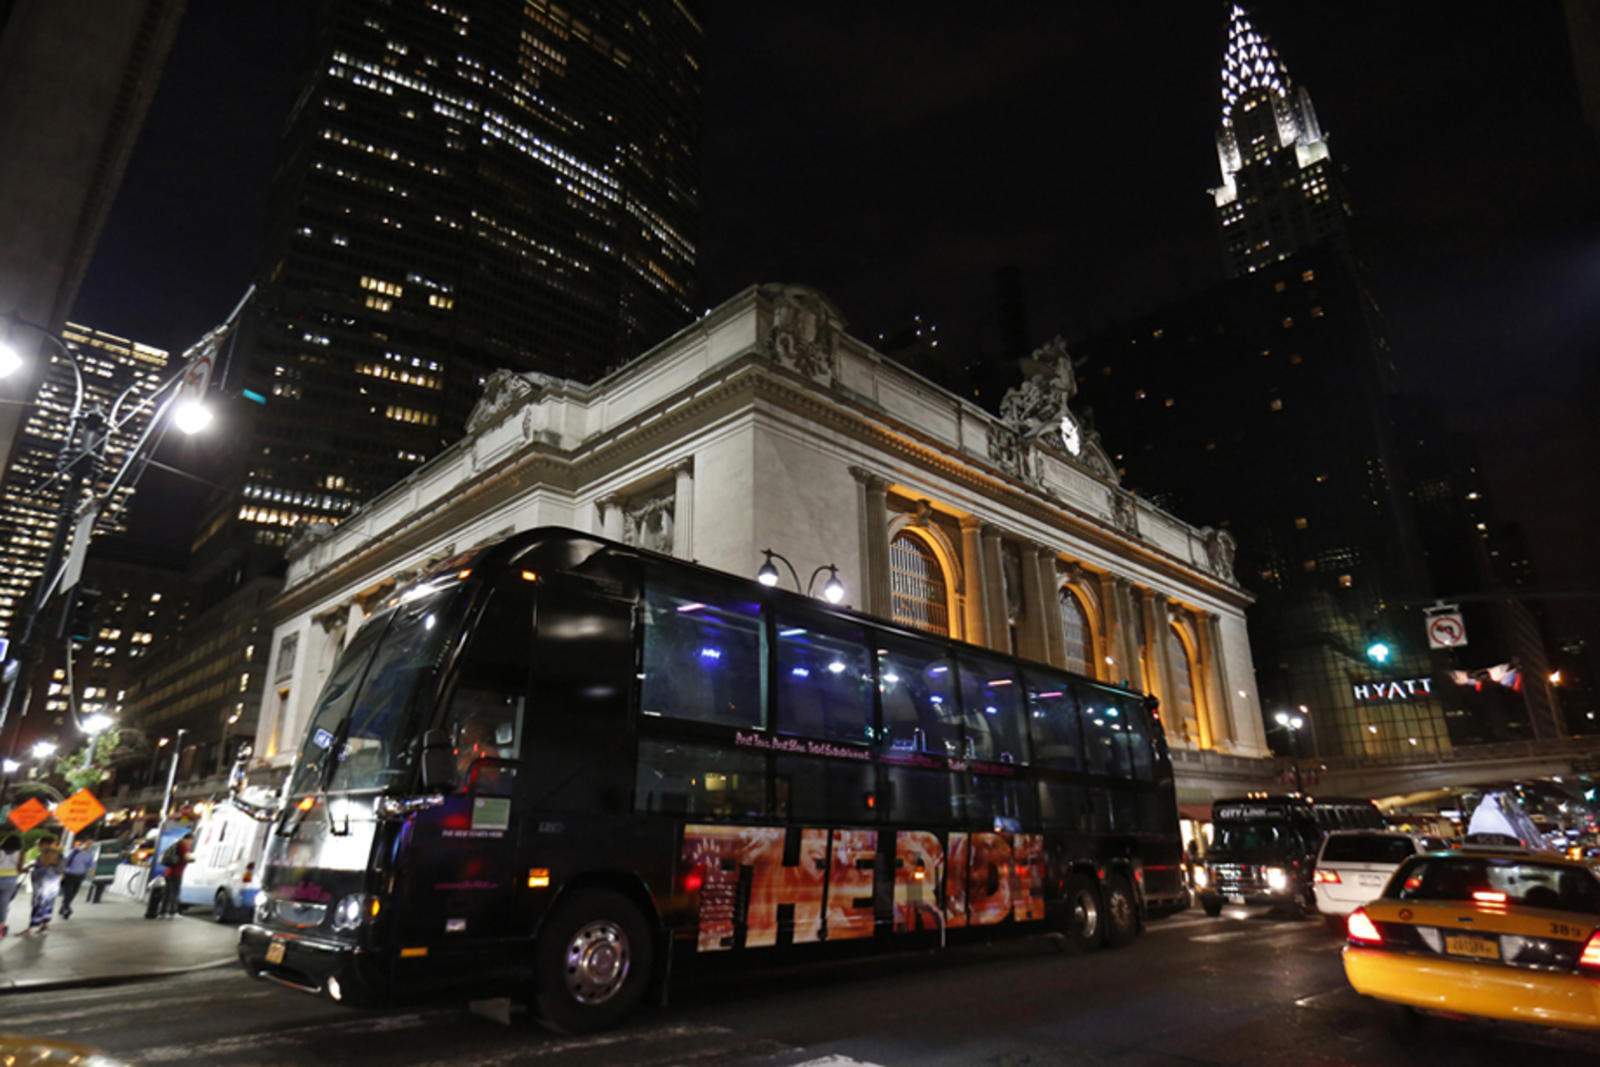 Don't Miss THE RIDE's Innovative New York City Tours!